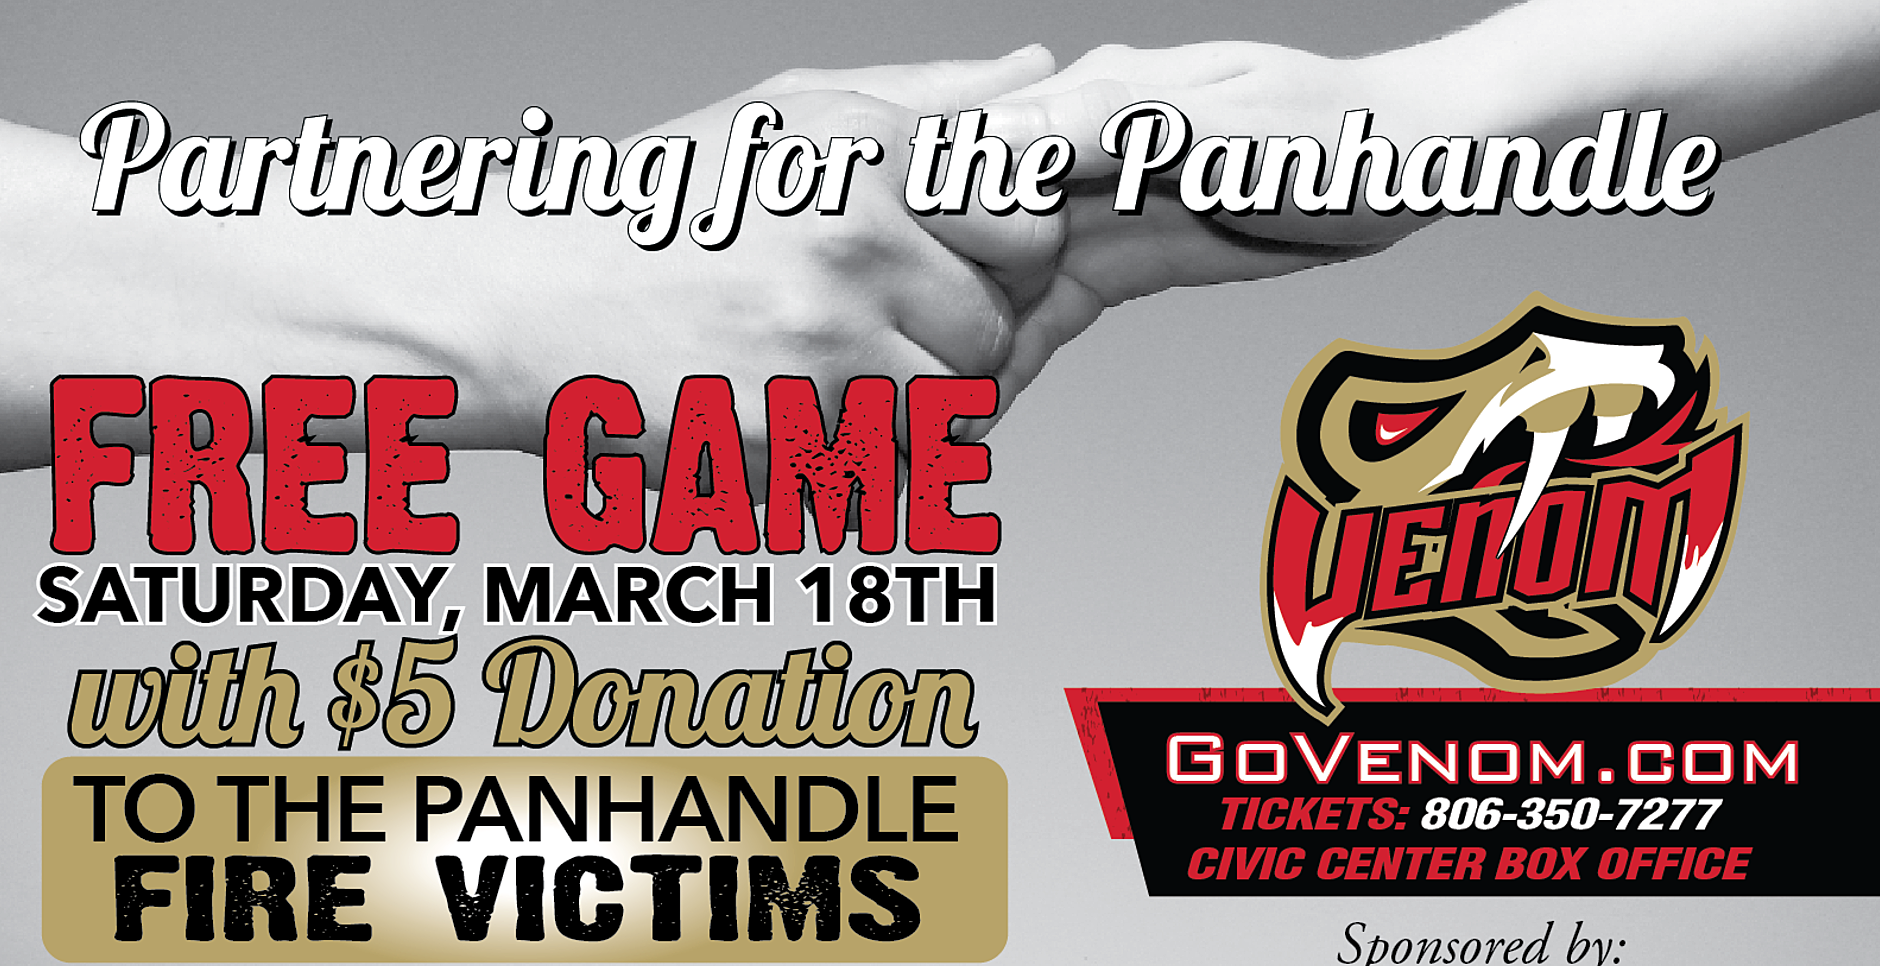 Restaurant roundup amarillo 2017 - Join The Amarillo Venom This Saturday As They Offer A Free Game Night With A 5 Donation To The Panhandle Fire Victims